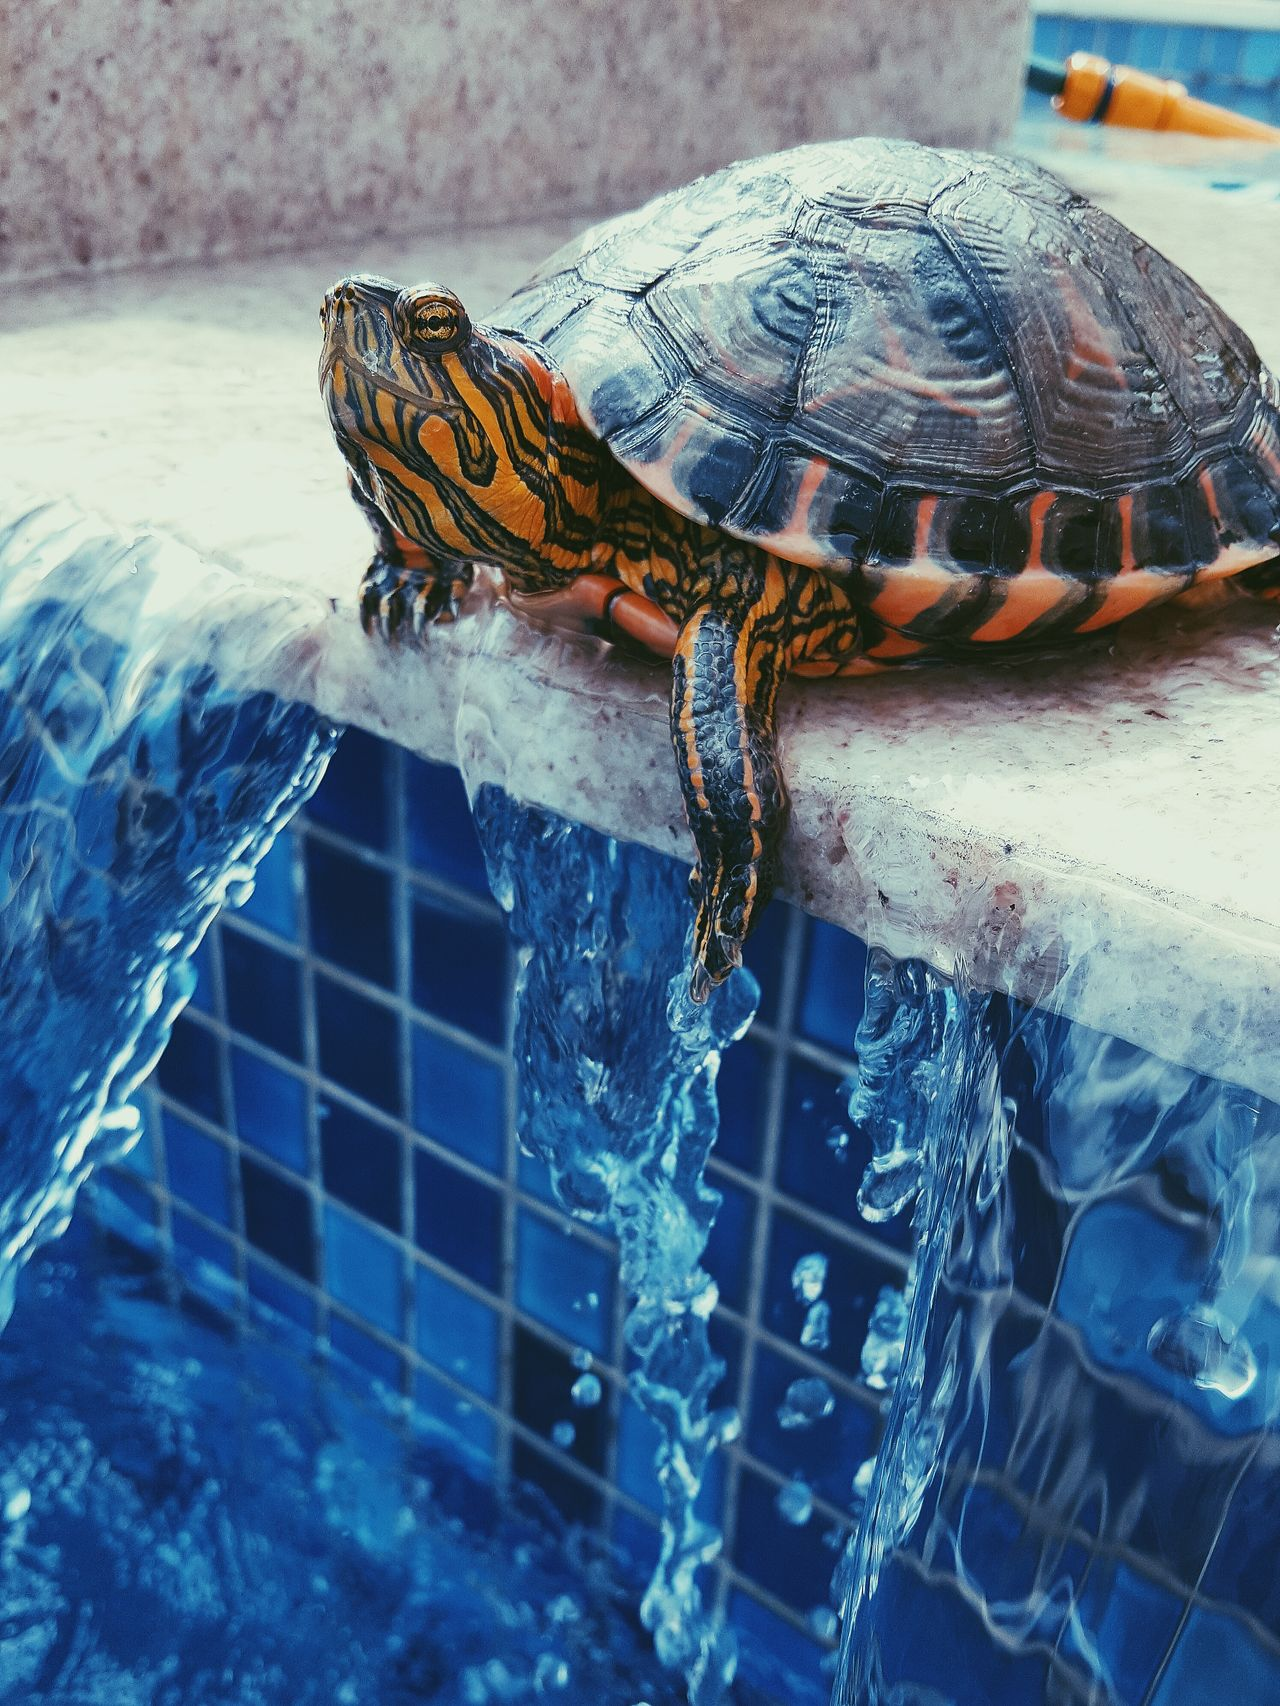 Reptile & Colors Animal Themes One Animal Water Reptile No People Nature Animal Wildlife Close-up Day Outdoors Sea Turtle Tortoise Shell First Eyeem Photo Animals In The Wild Sea Life Mammal